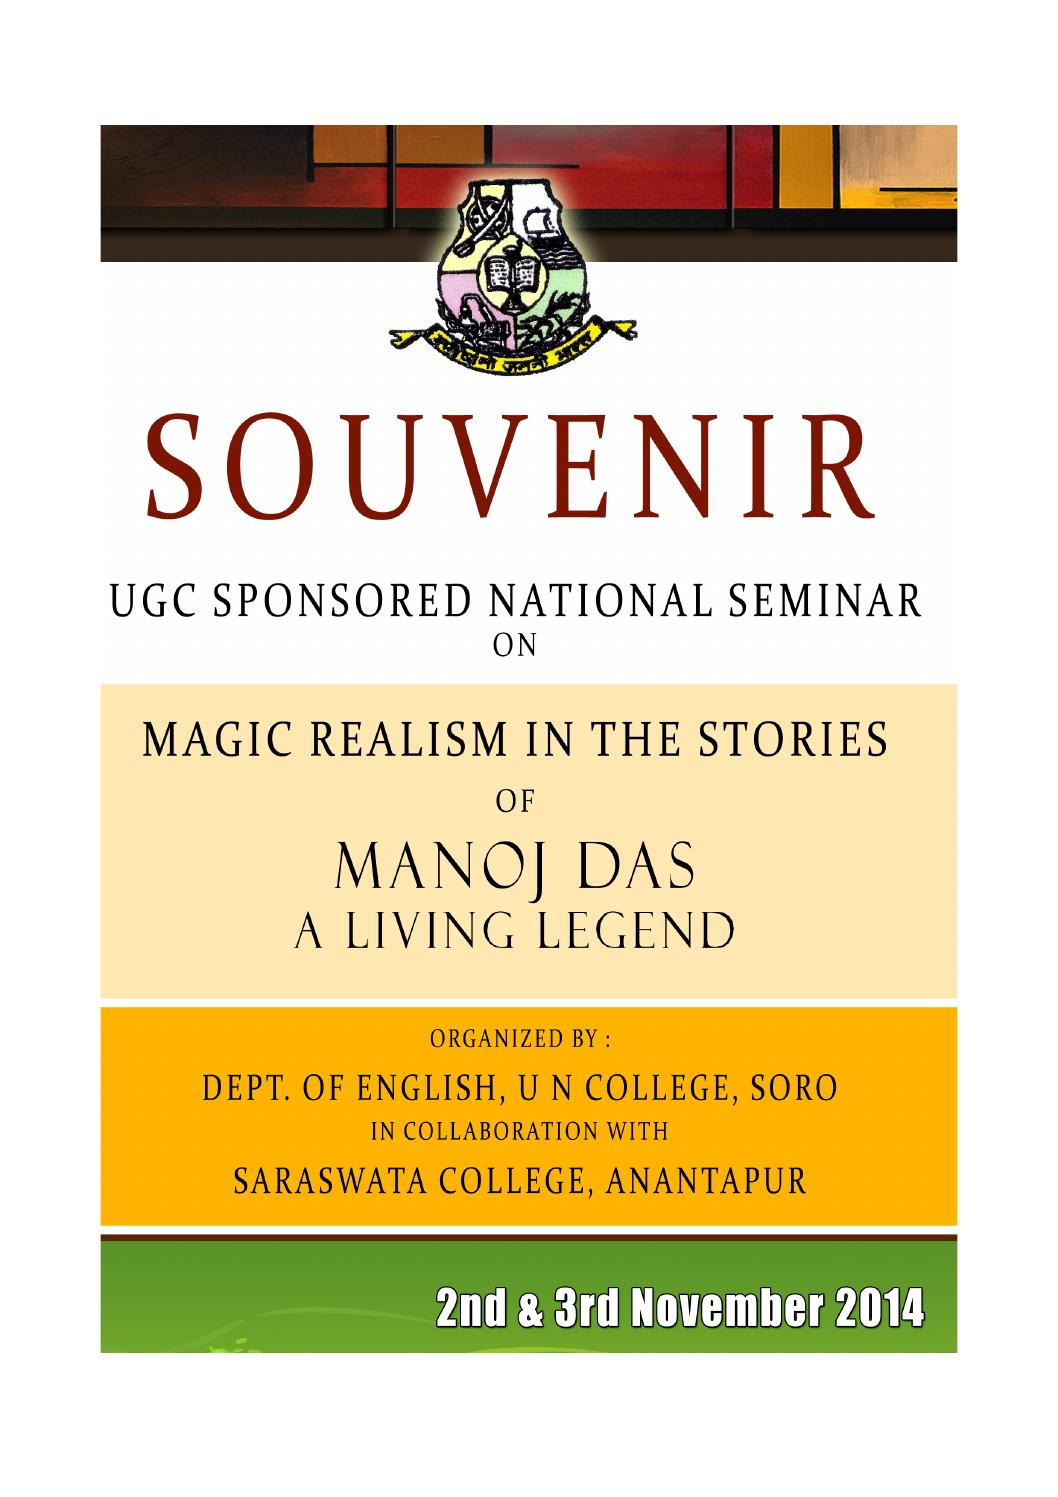 magic realism in the stories of manoj das a living legend souvenir magic realism in the stories of manoj das a living legend souvenir of ugc sponsored national seminar by samir ranjan das issuu